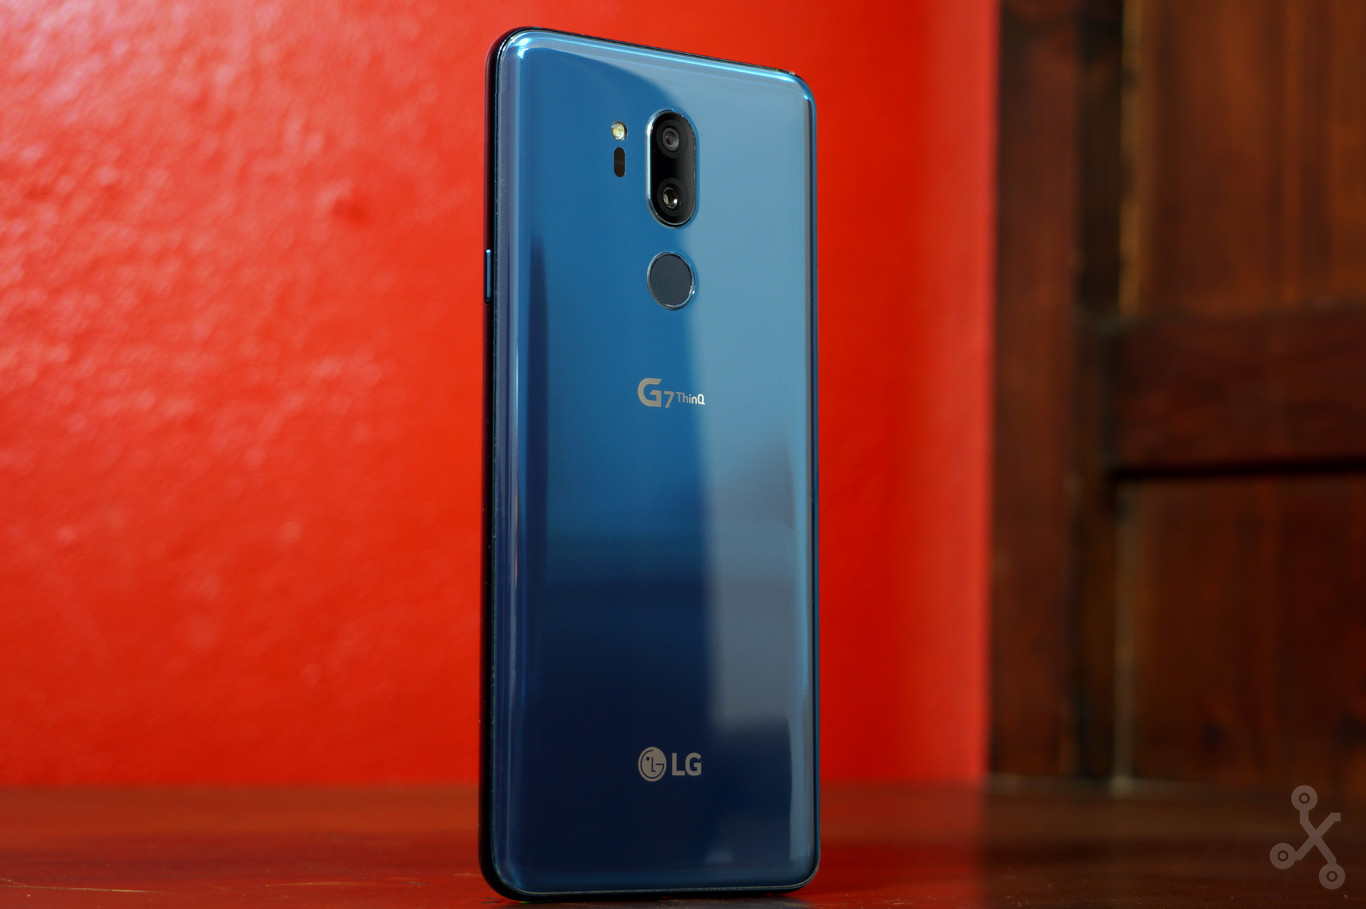 LG G7 ThinQ launched in Mexico